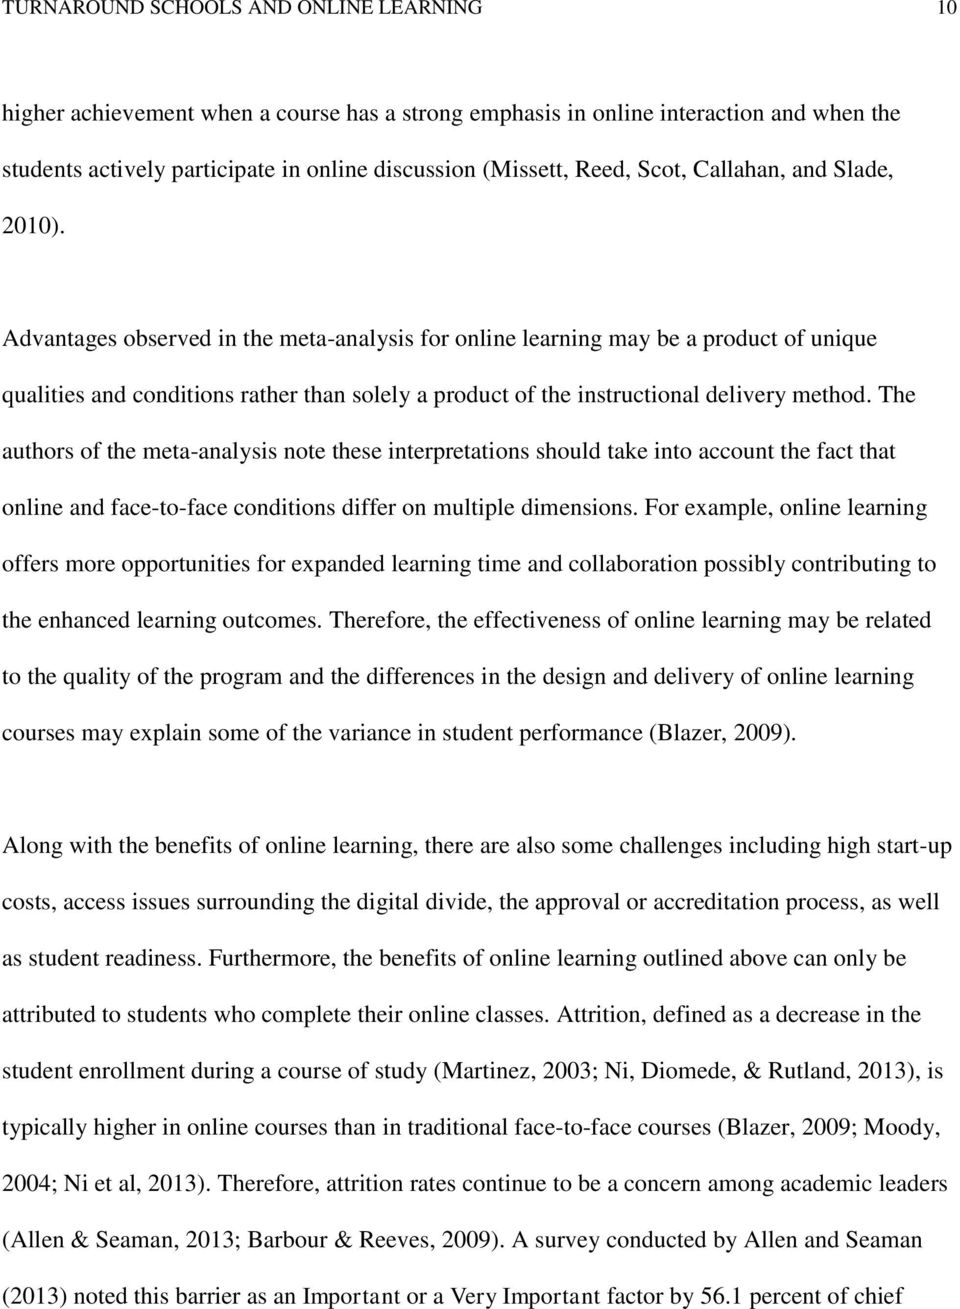 Advantages observed in the meta-analysis for online learning may be a product of unique qualities and conditions rather than solely a product of the instructional delivery method.